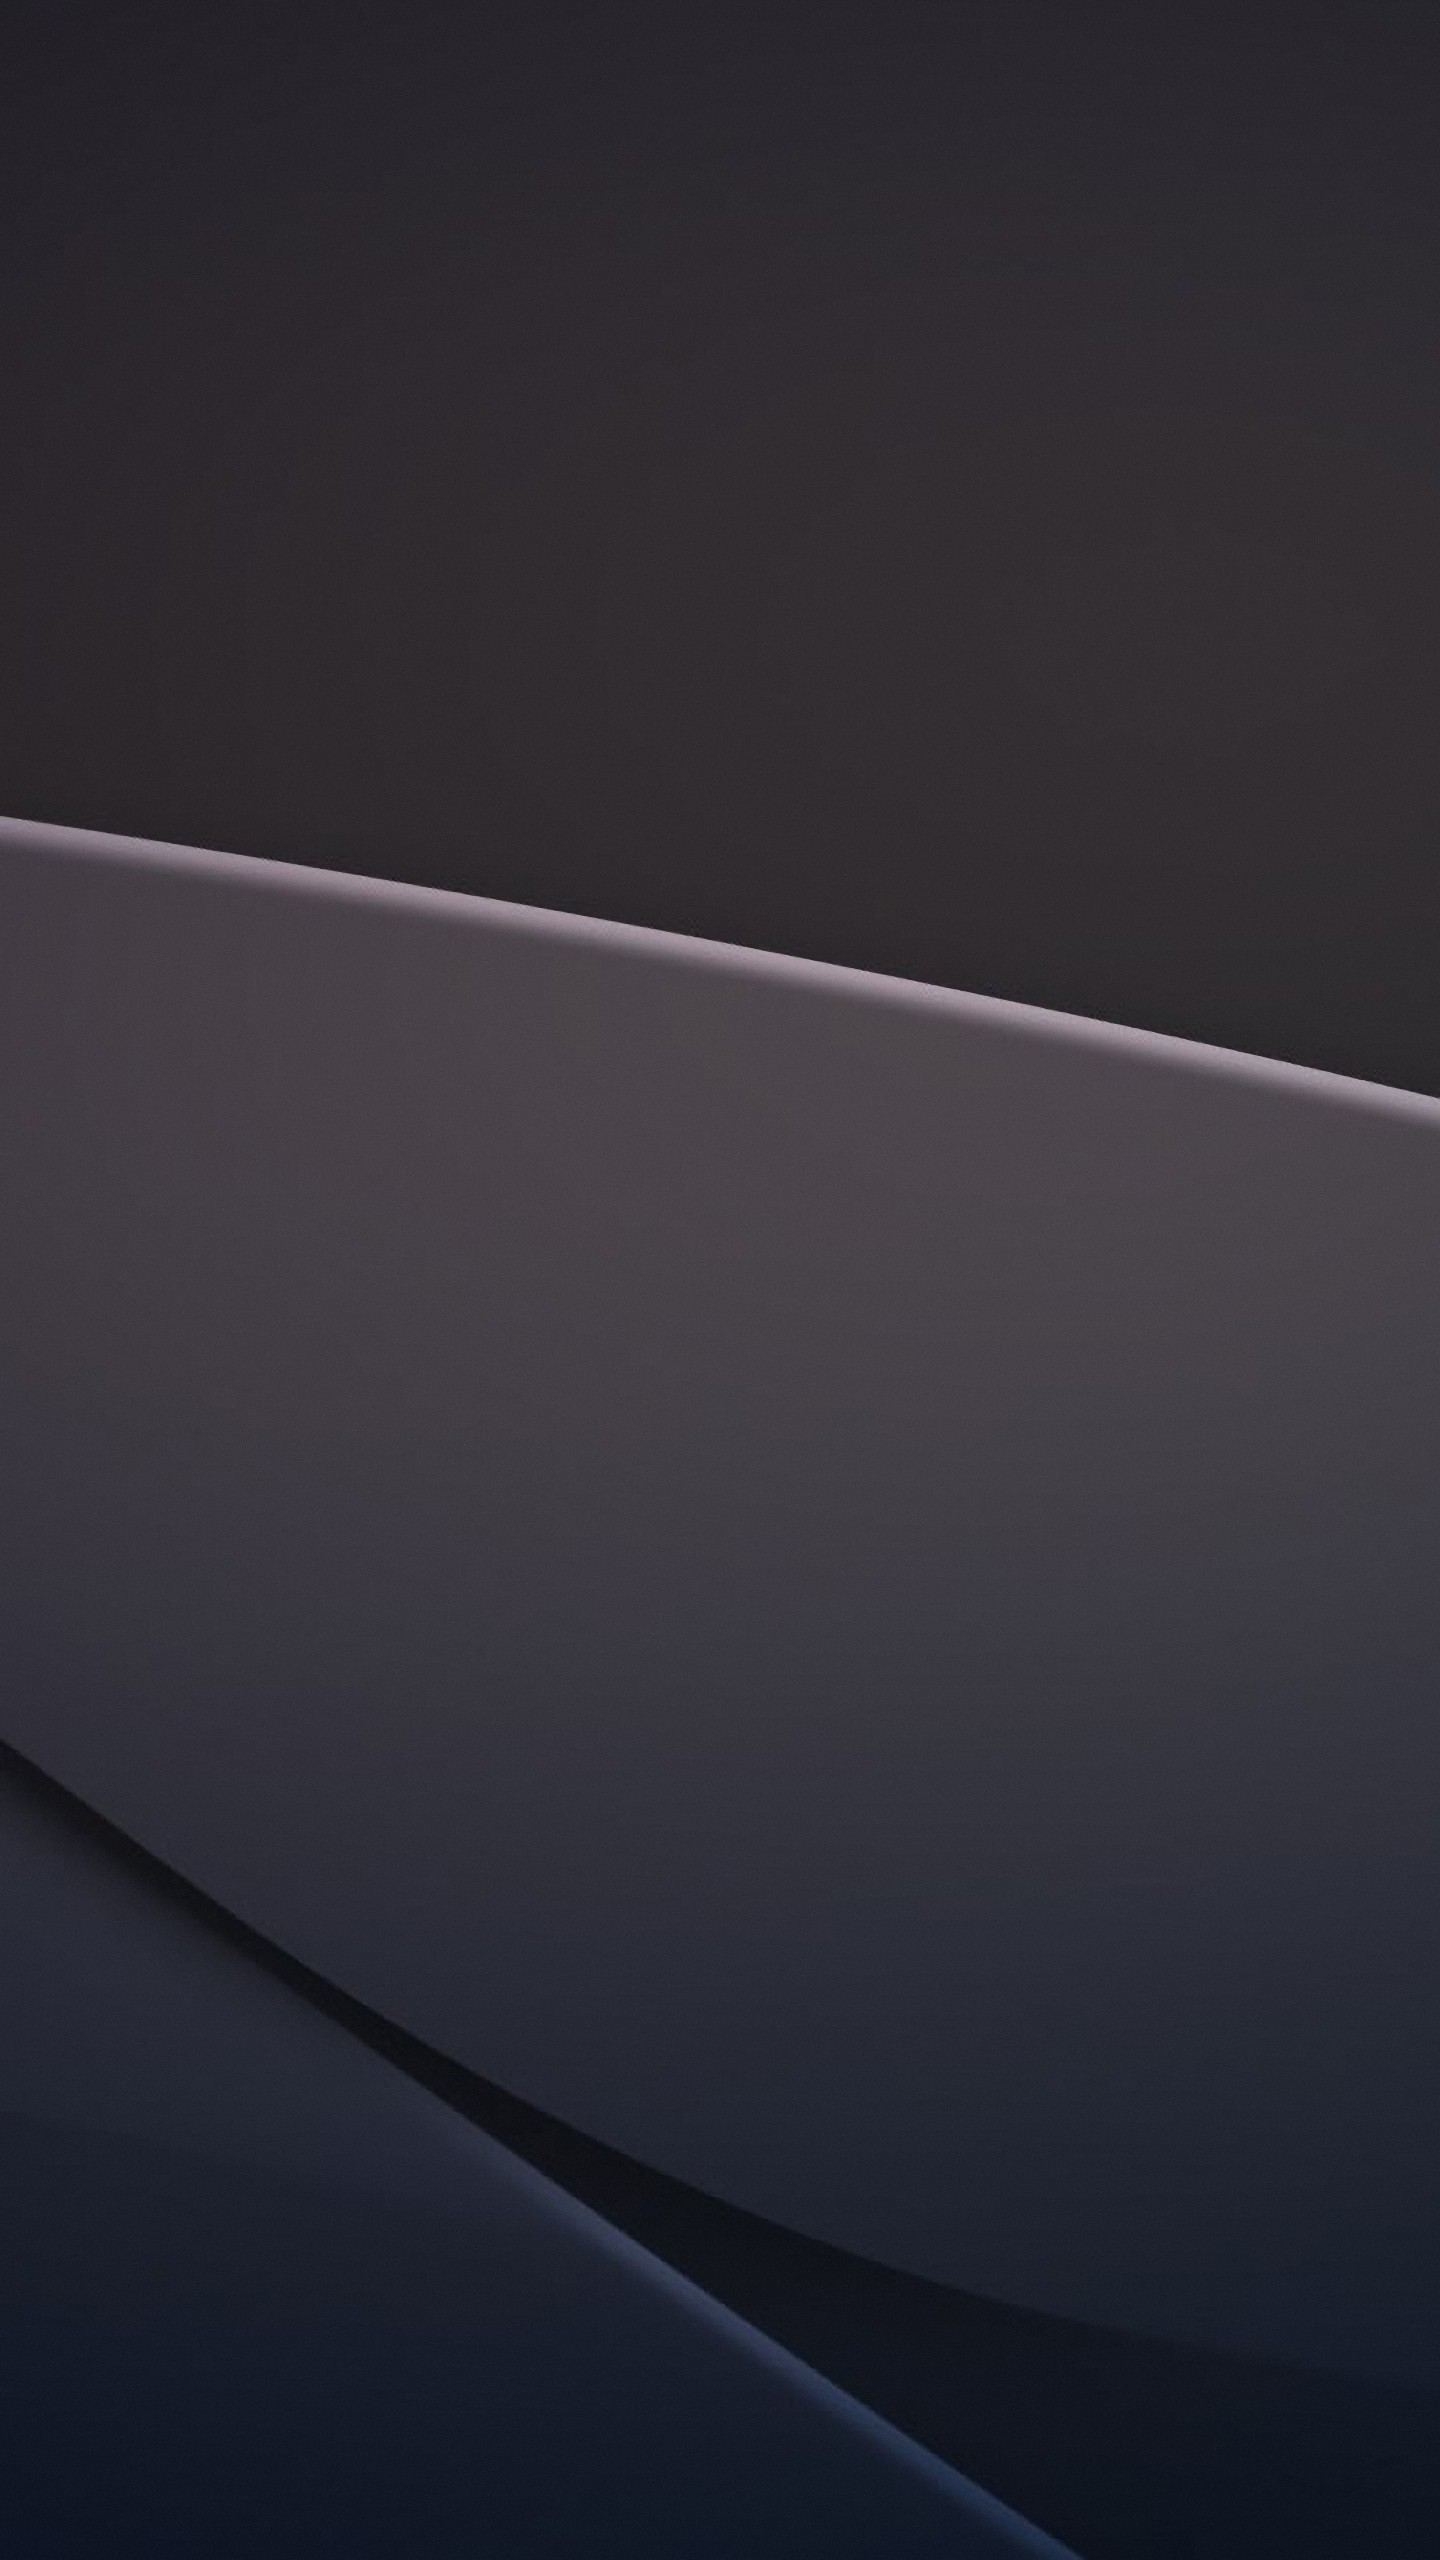 your lg g3 hd metallic curves lg g3 wallpapers